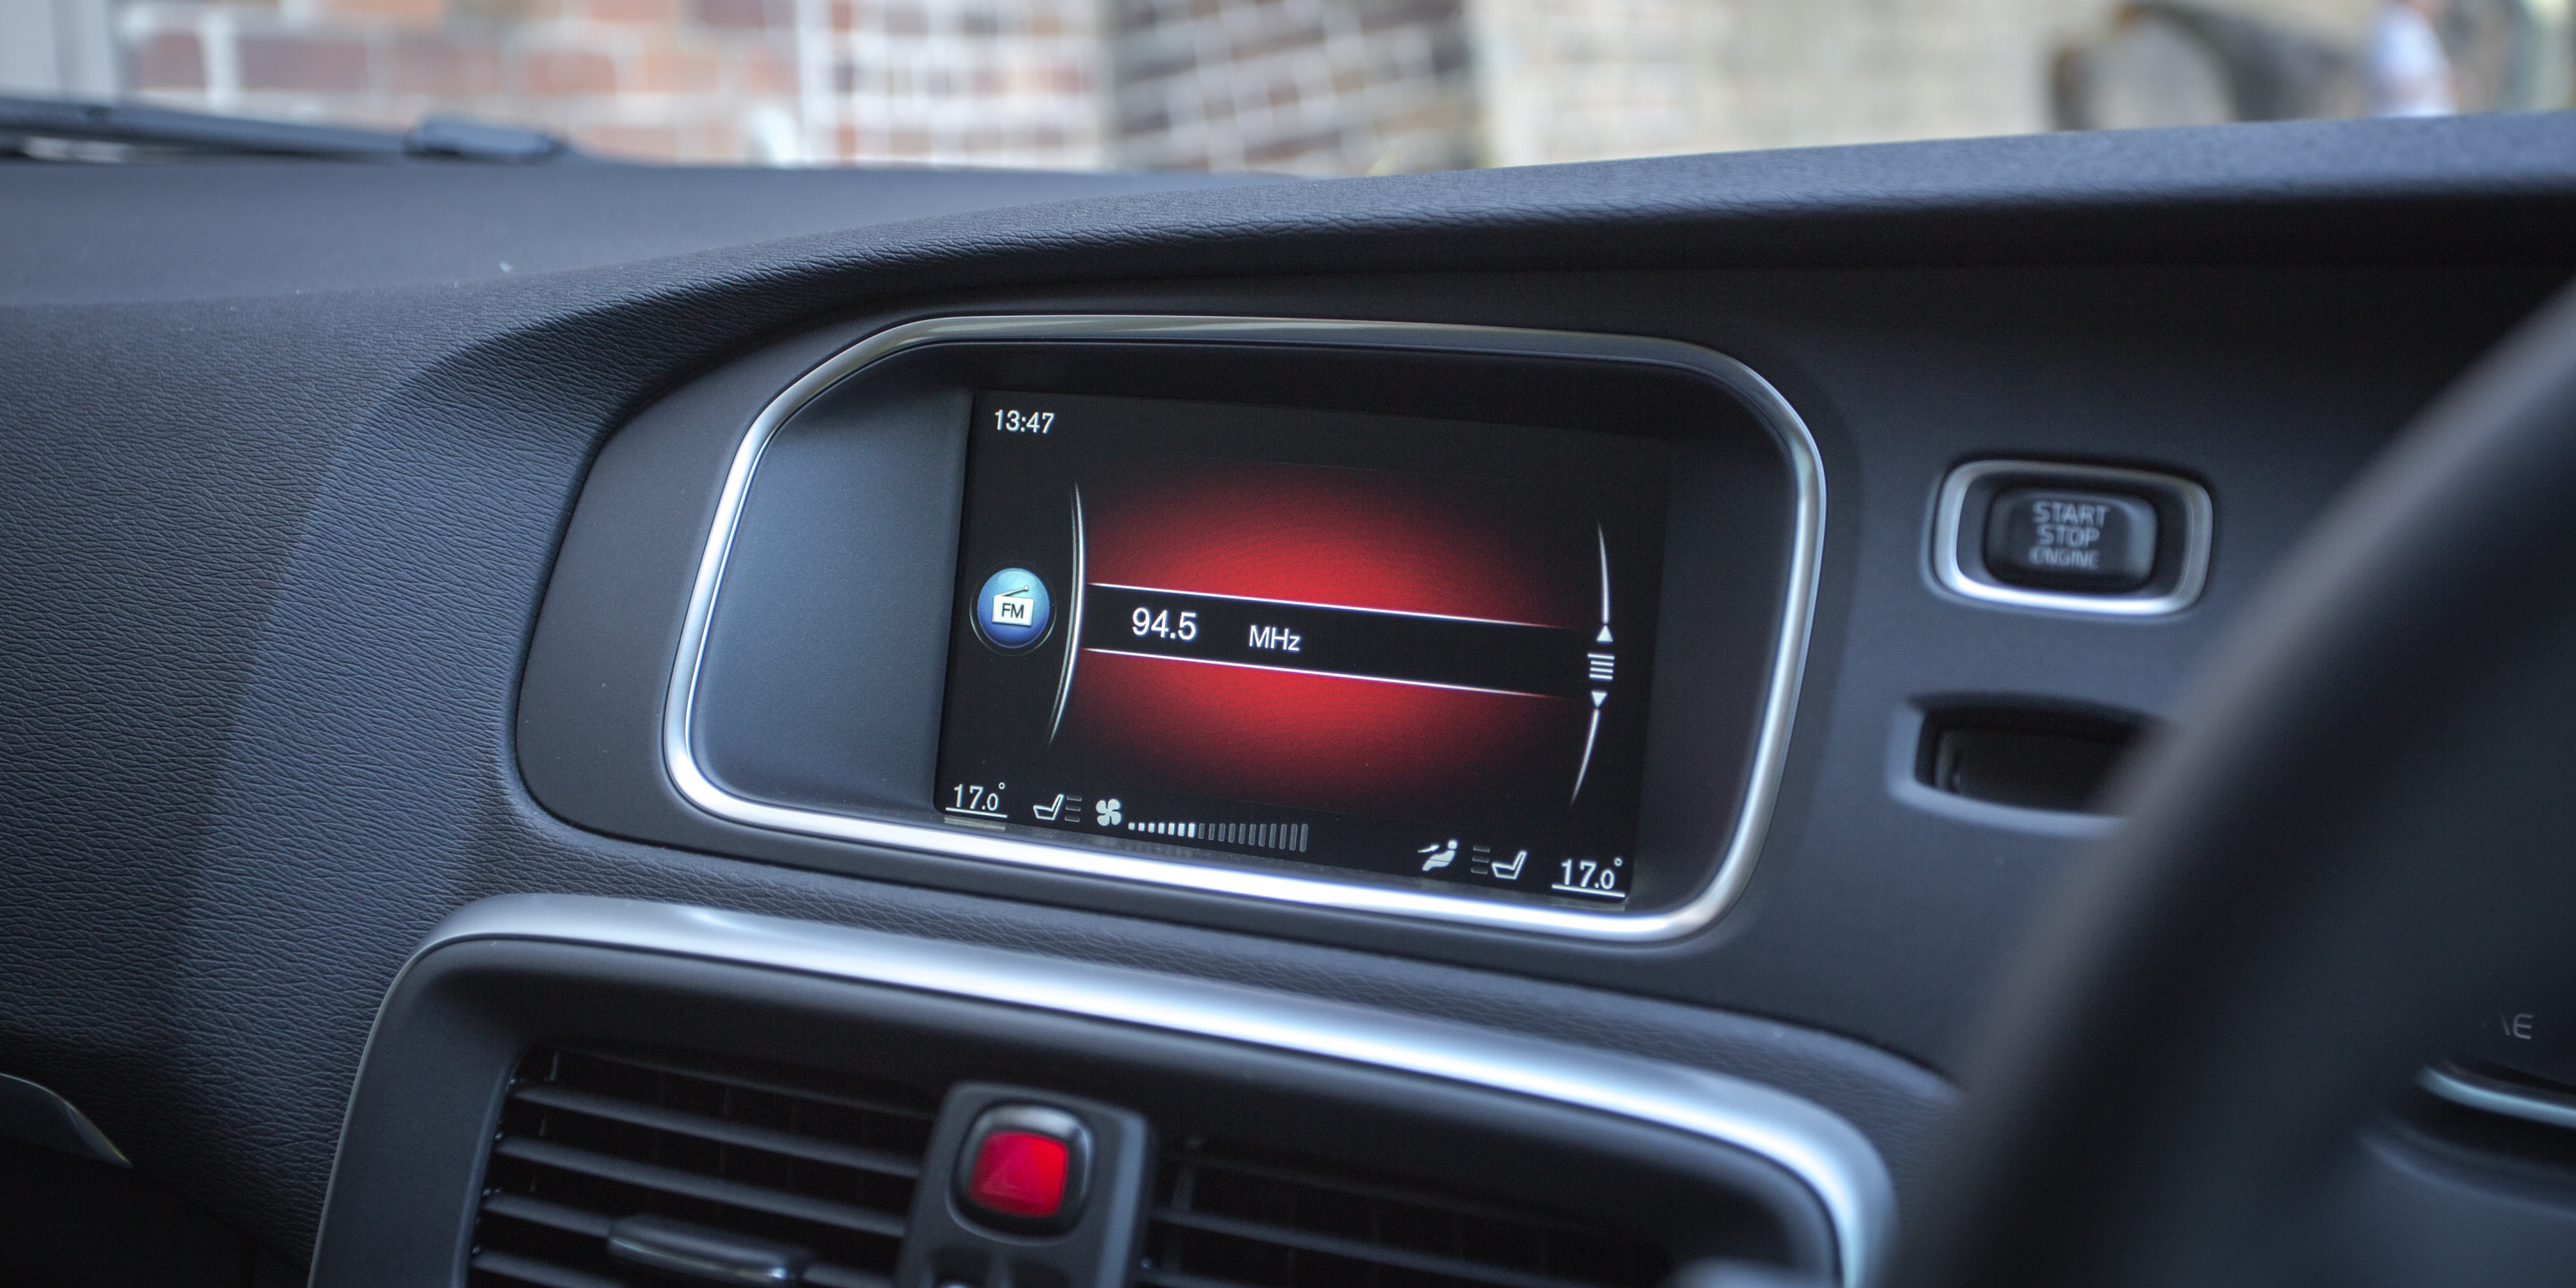 2017 Volvo V40 D4 Review: Inscription with Polestar Performance pack - photos   CarAdvice